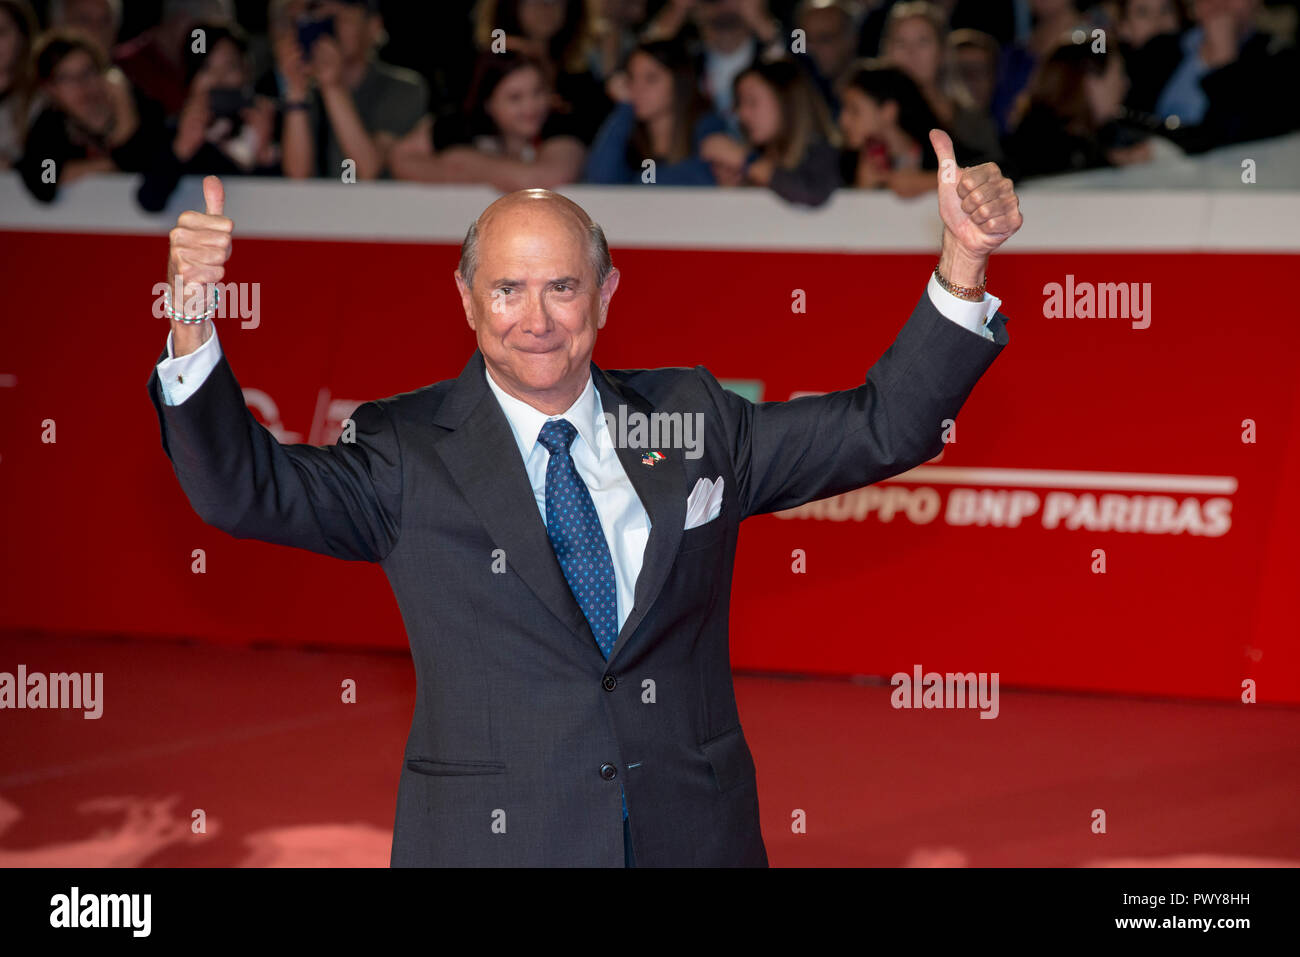 Rome, Italy. 18th October, 2018. The United States Ambassador to Italy Lewis M. Eisenberg attending the red carpet during the 13th Rome Film Fest Credit: Silvia Gerbino/Alamy Live News Stock Photo